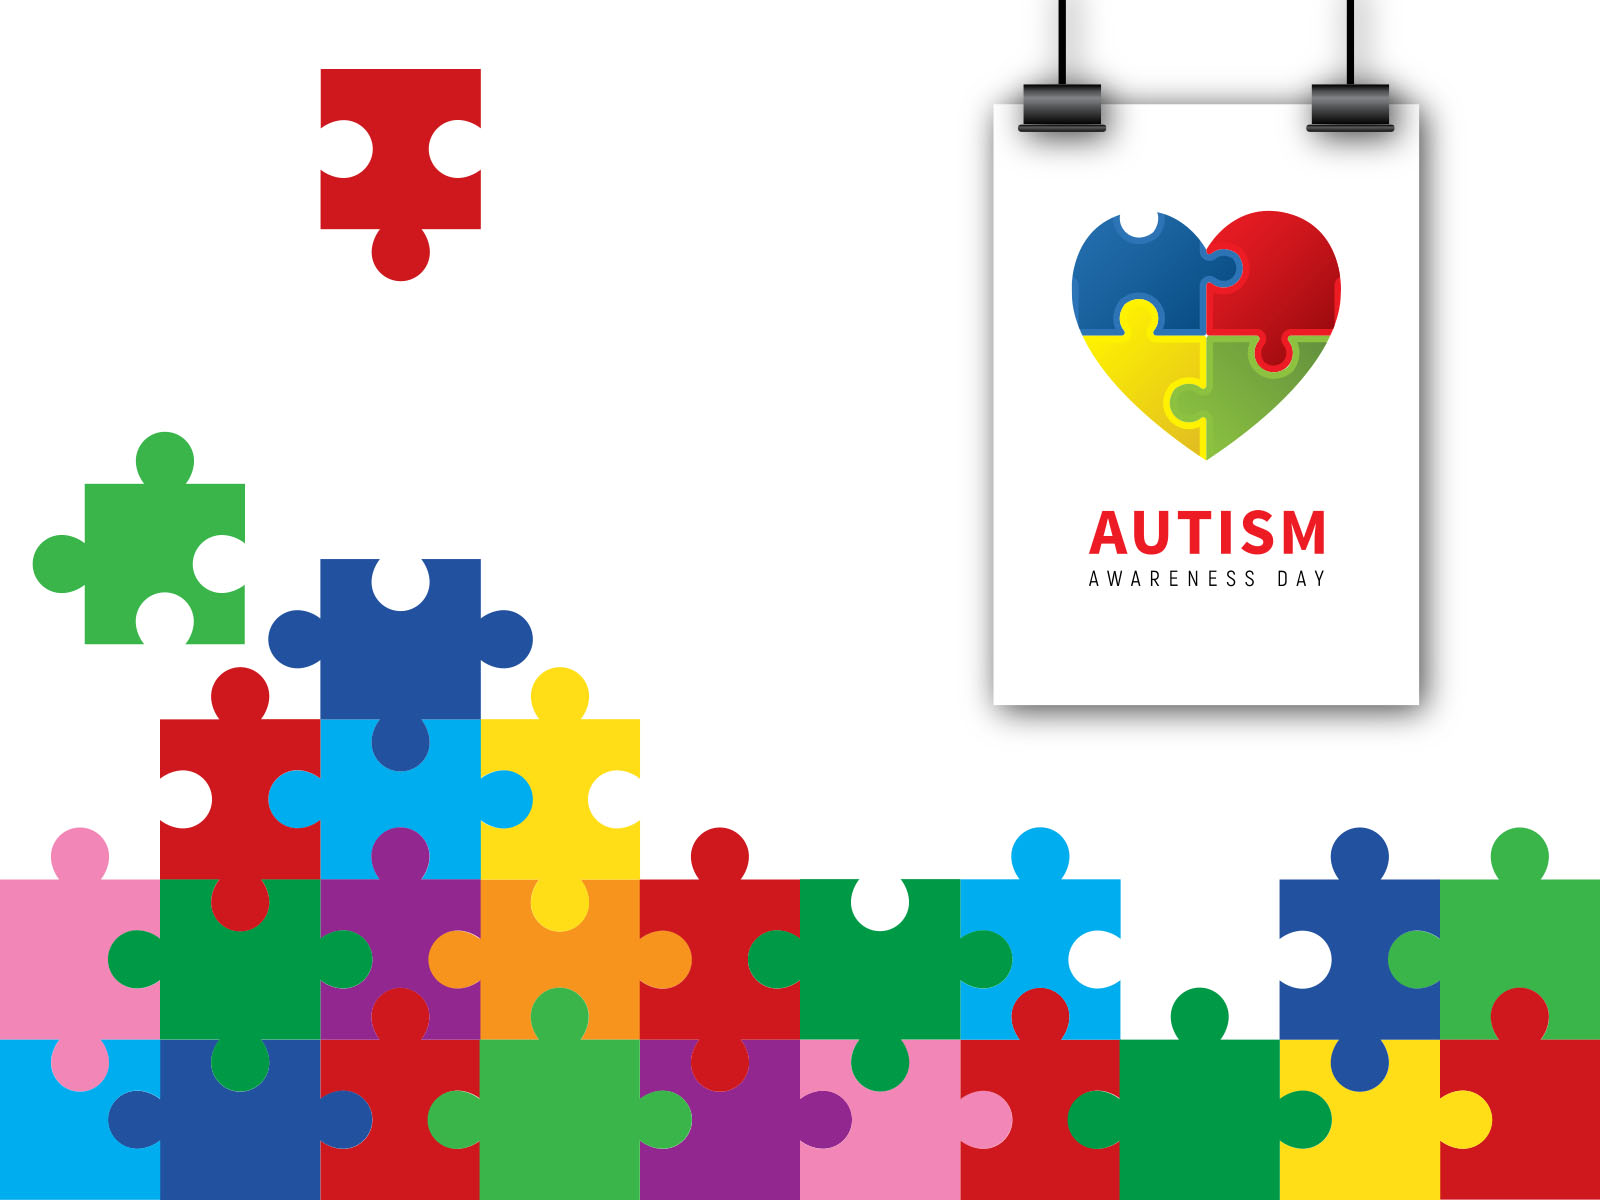 Autism puzzle for awareness backgrounds for powerpoint templates autism puzzle for awareness backgrounds for powerpoint templates ppt backgrounds toneelgroepblik Gallery